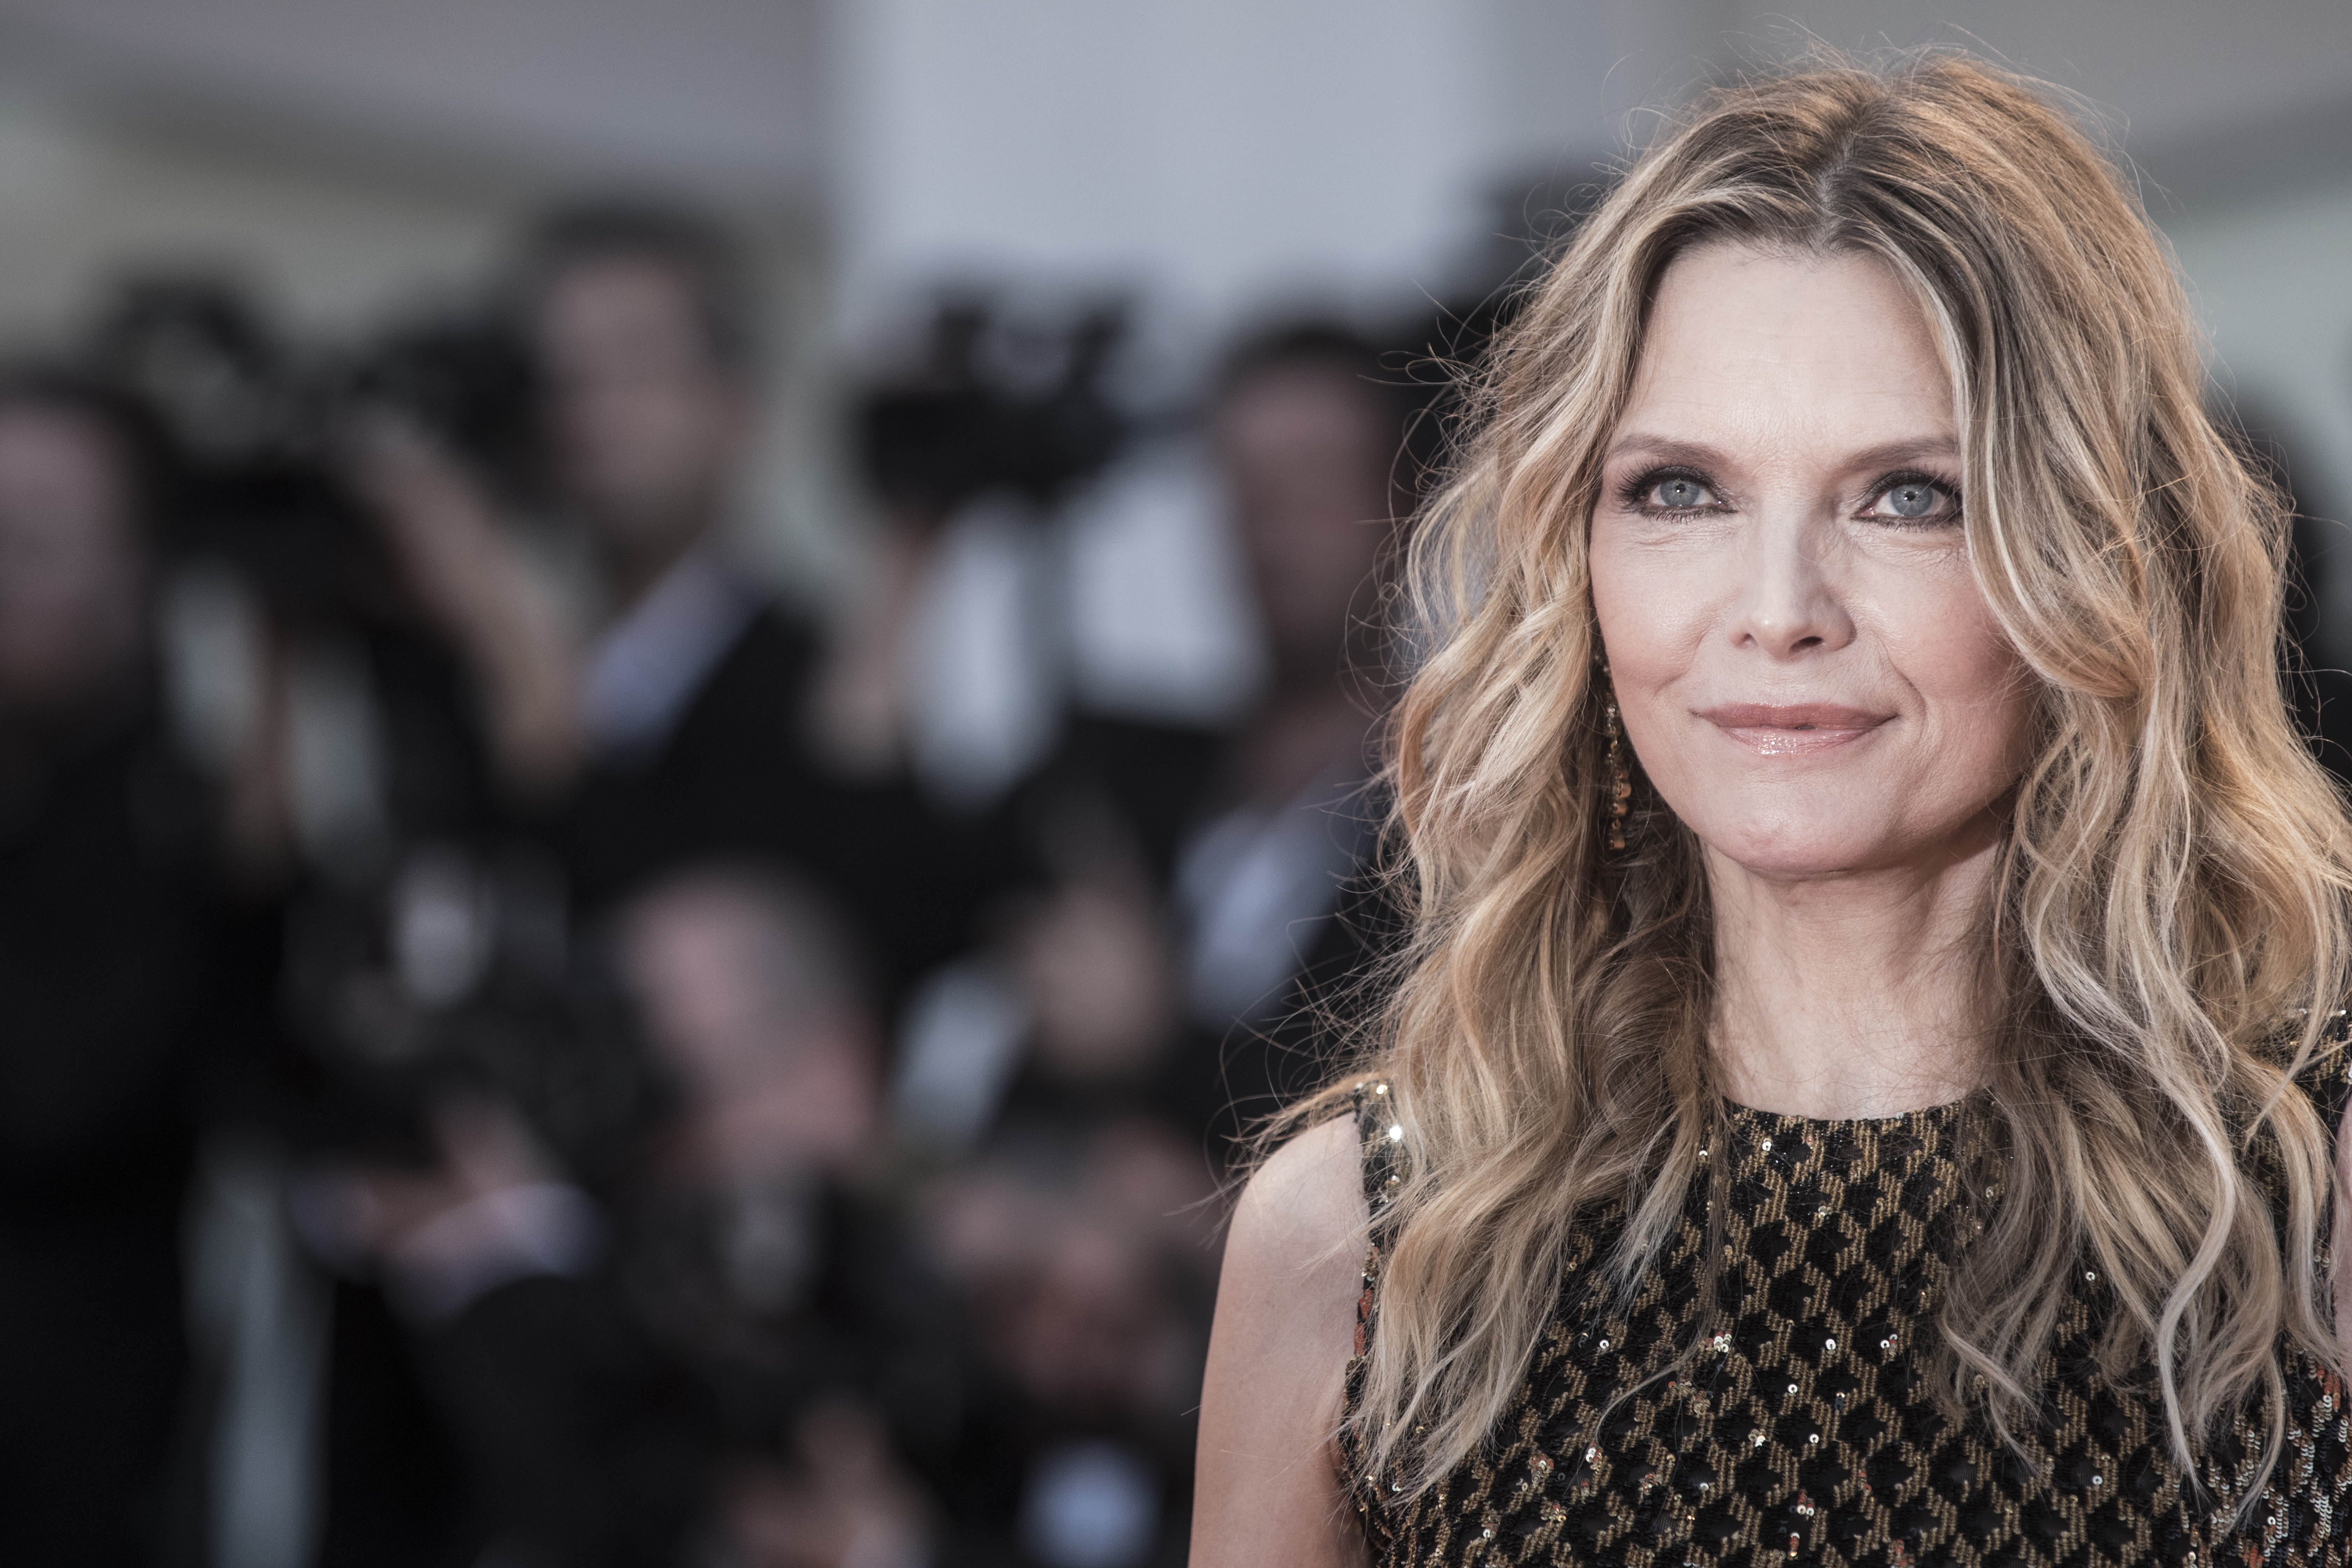 Michelle Pfeiffer attends the 'mother!' screening during the 74th Venice Film Festival at Sala Grande on September 5, 2017 in Venice, Italy.